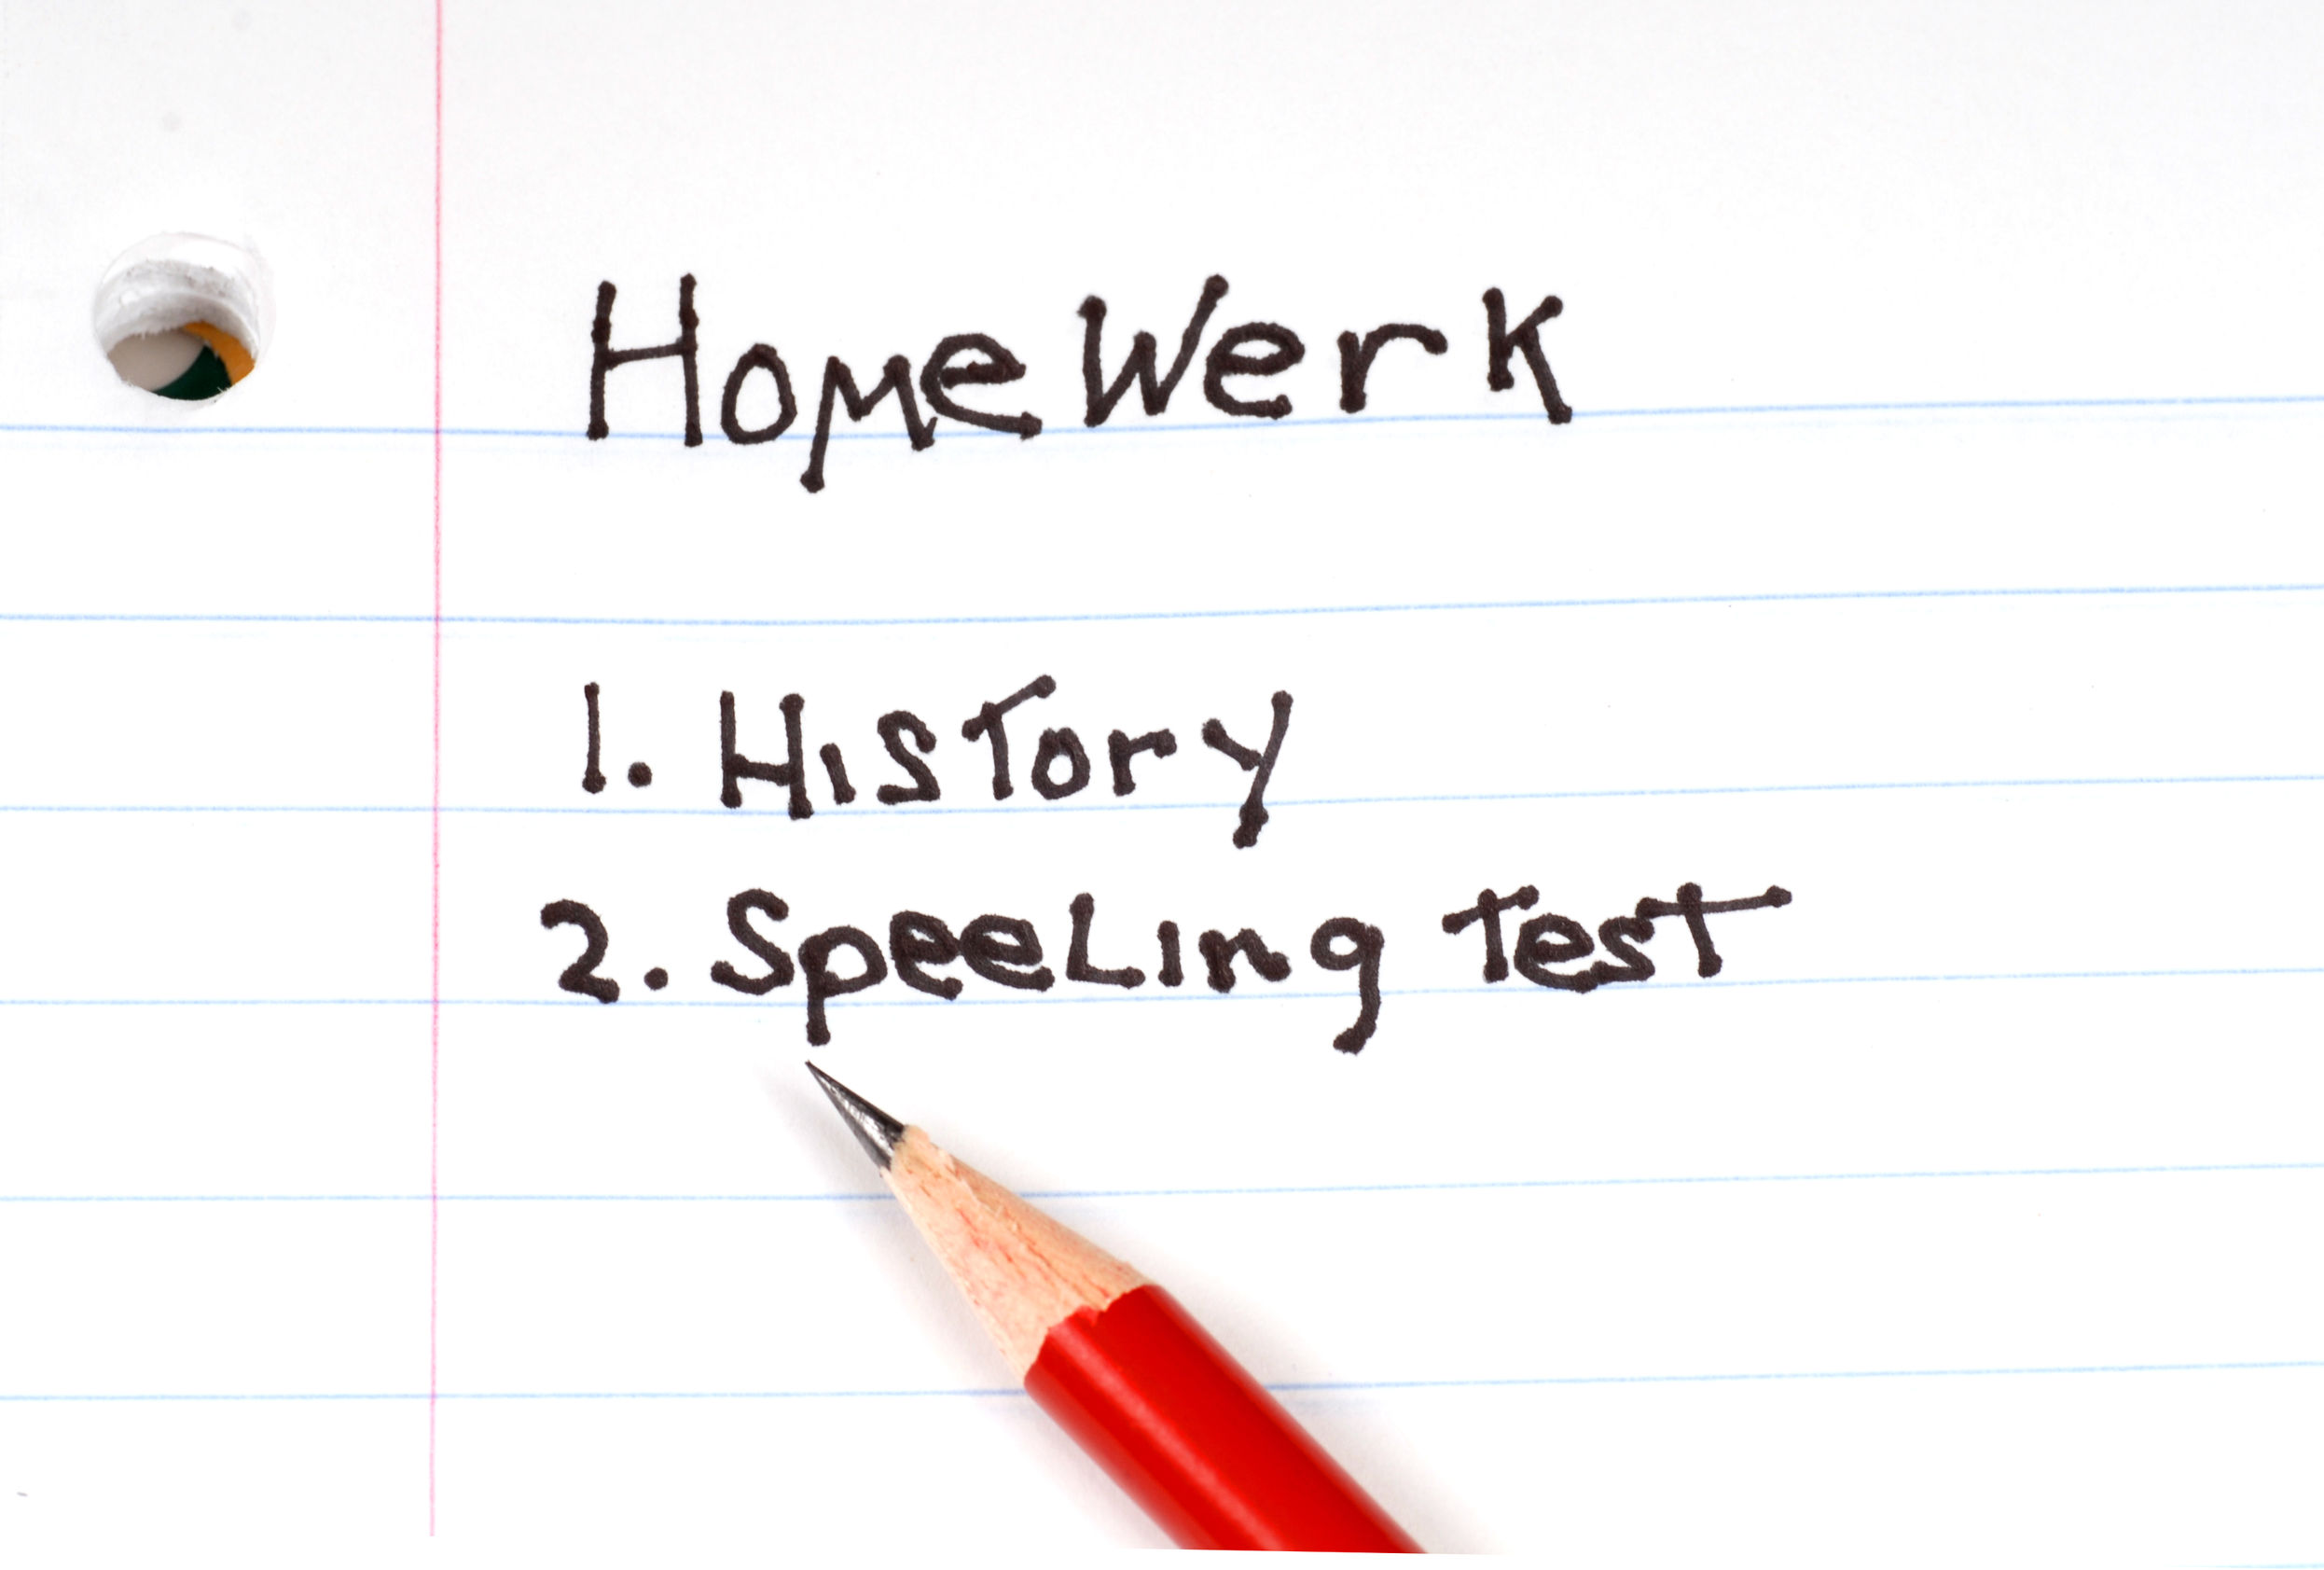 A list of homework to do with misspelled words